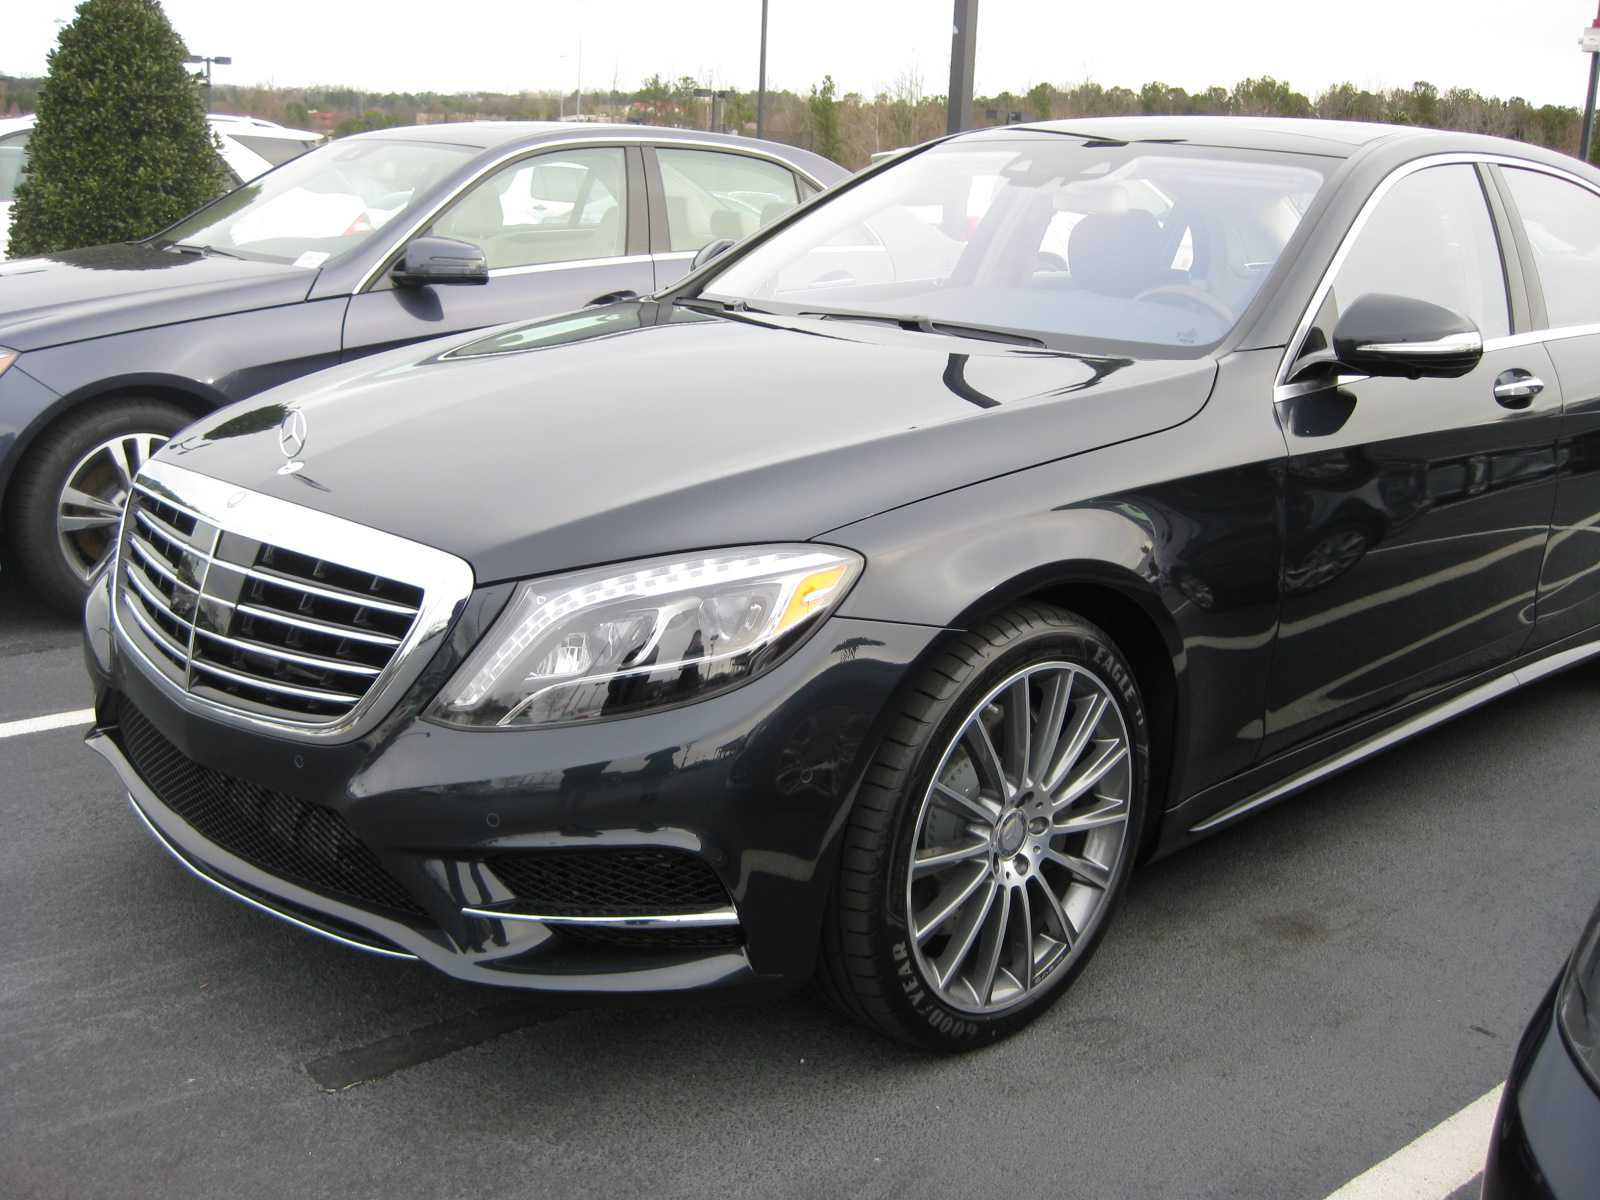 Benzblogger Blog Archiv New Color Anthracite Blue Code 998 On 2014 Mercedes Benz S550